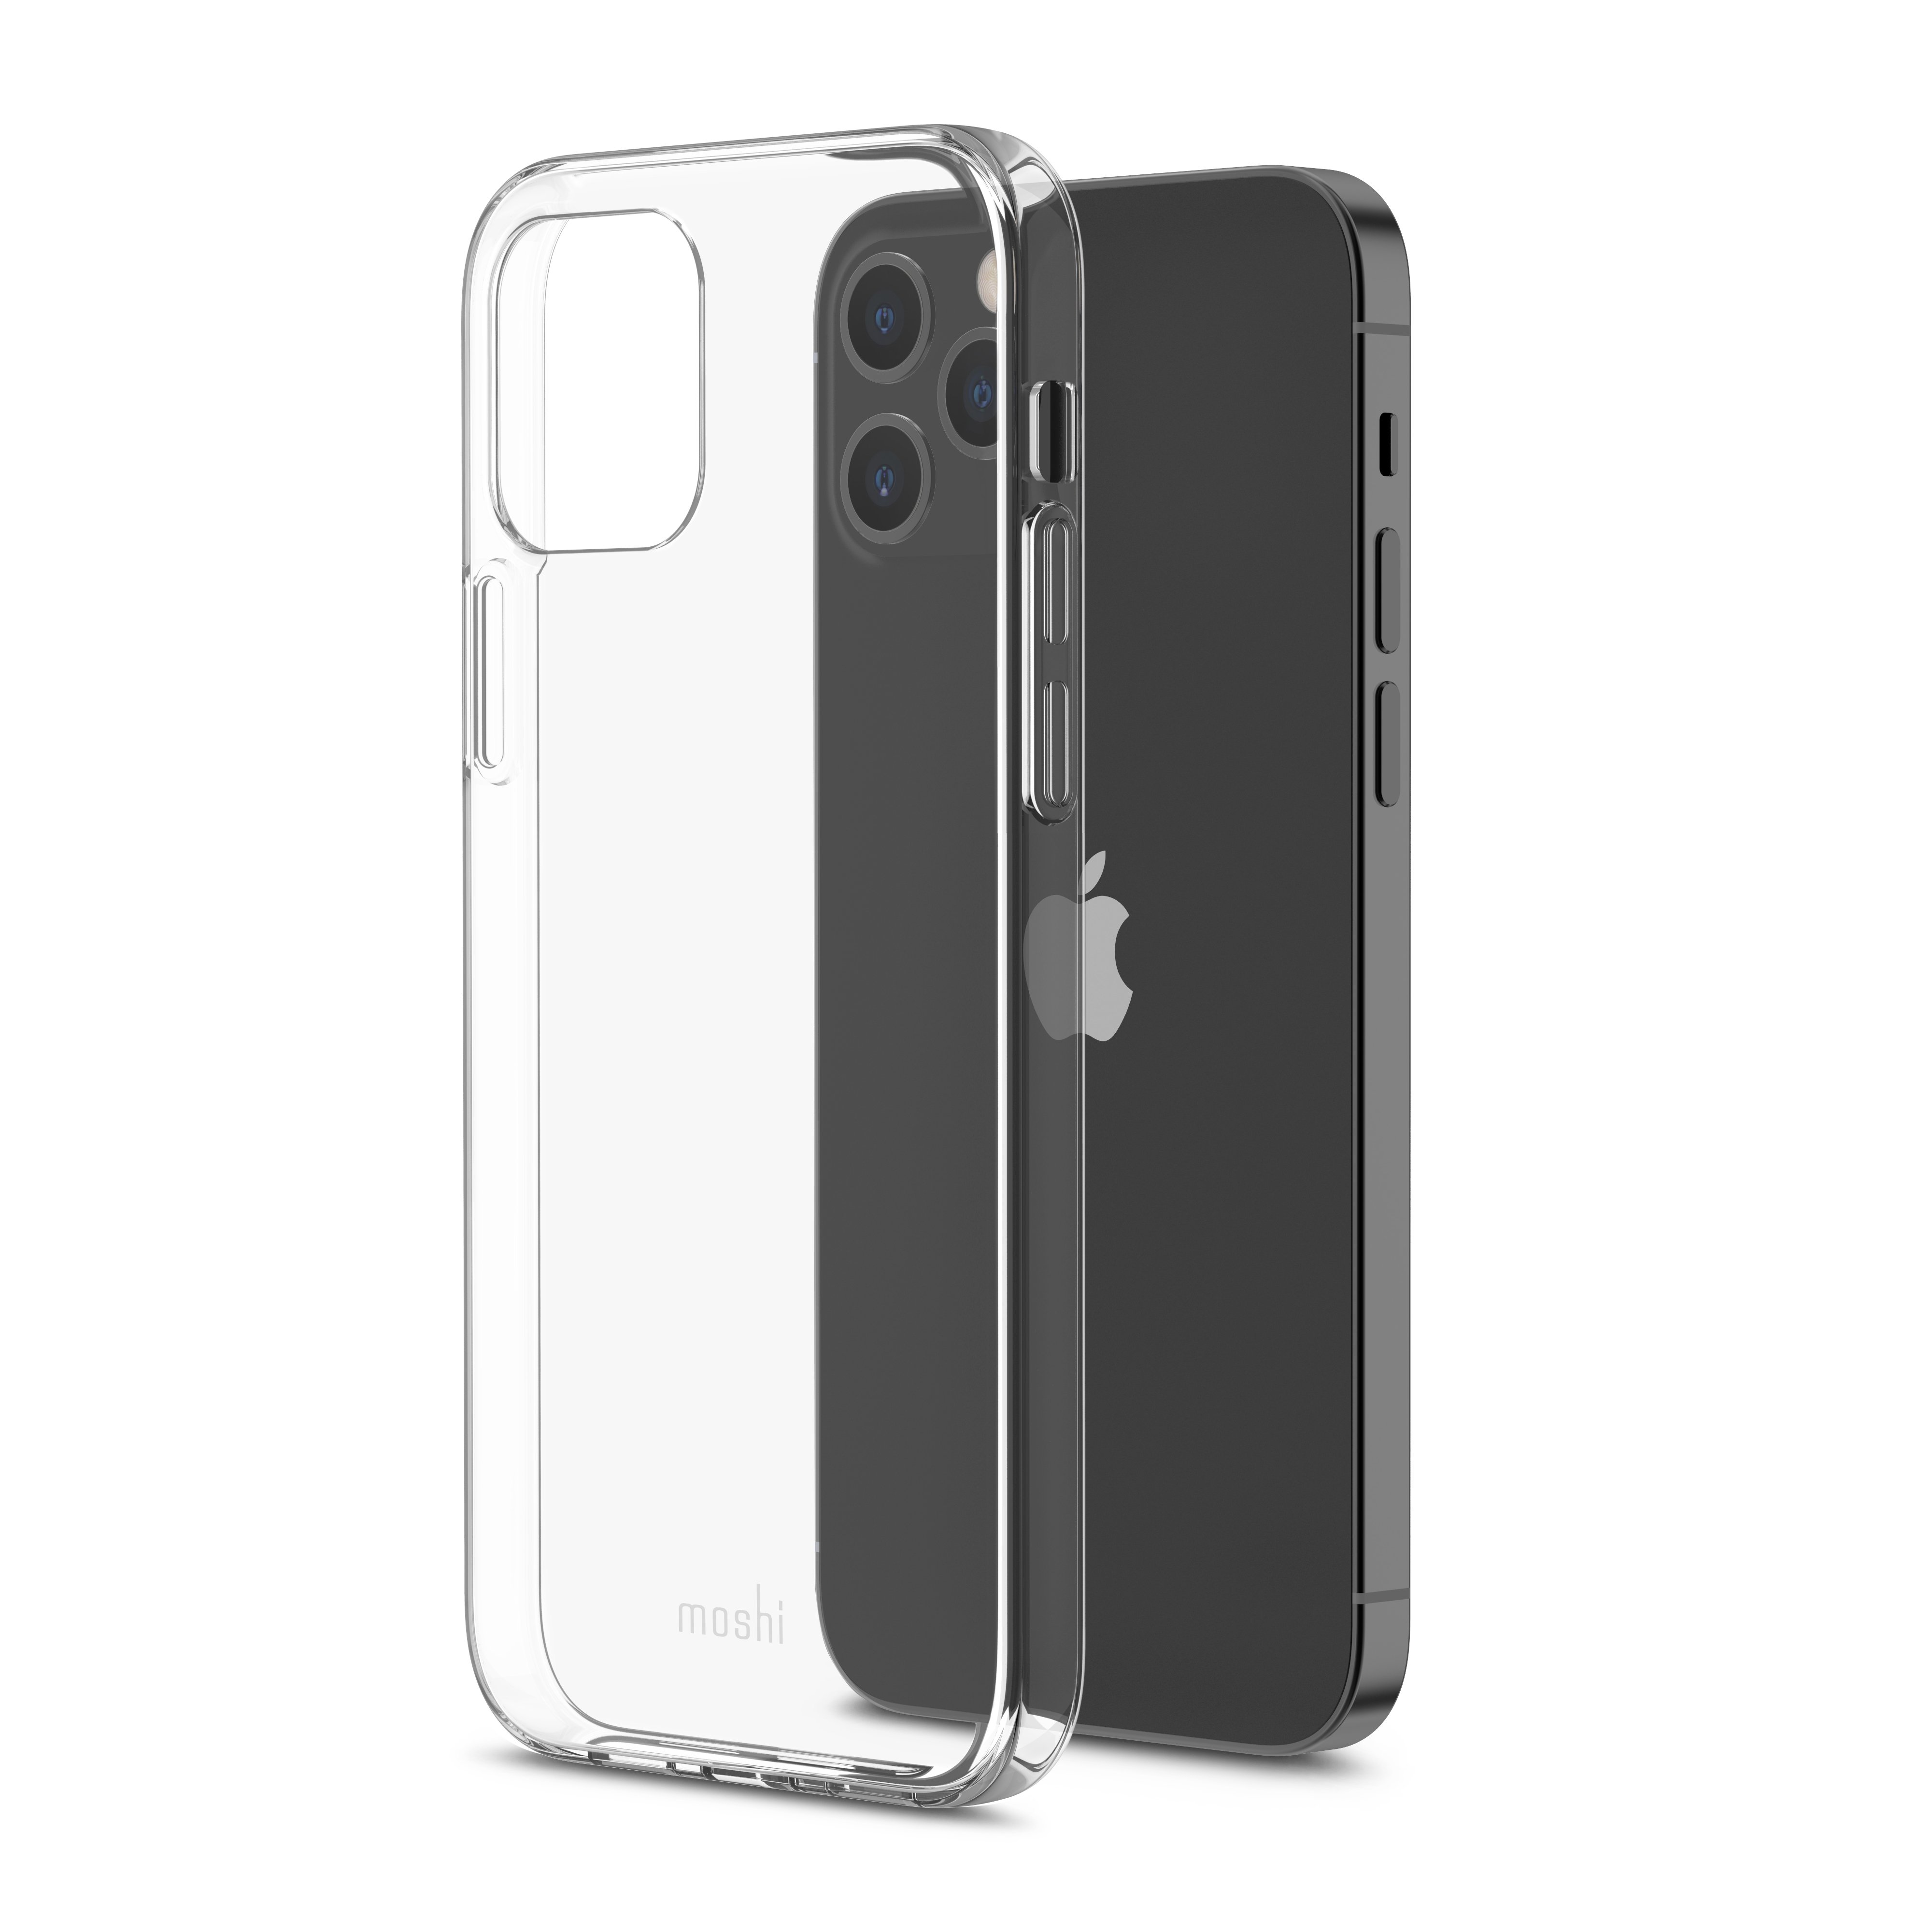 Moshi VITROS Apple iPhone 12 / 12 Pro Case - Slim See-Through Cover, Lightweight - Clear